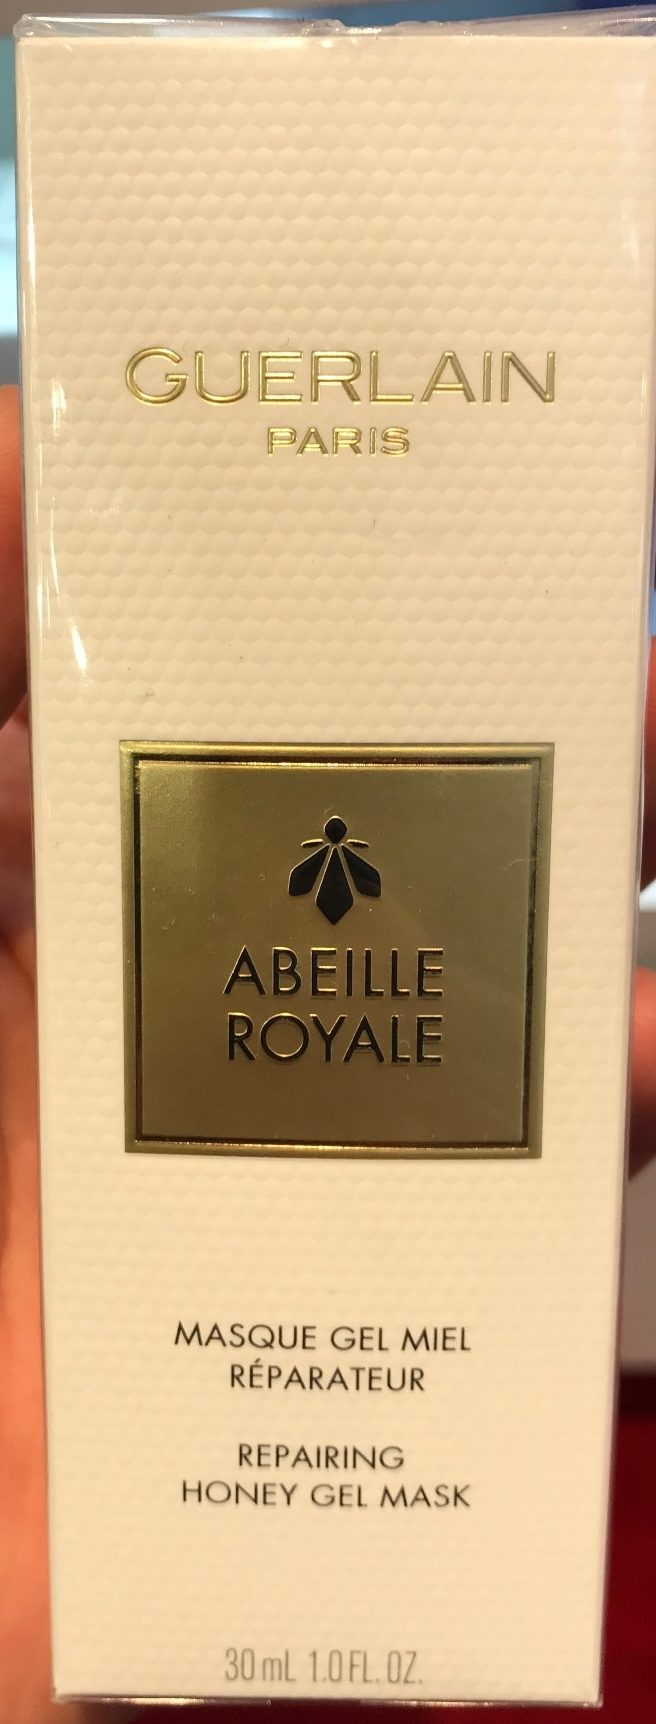 Abeille Royale - Masque Gel Miel Réparateur - Product - fr